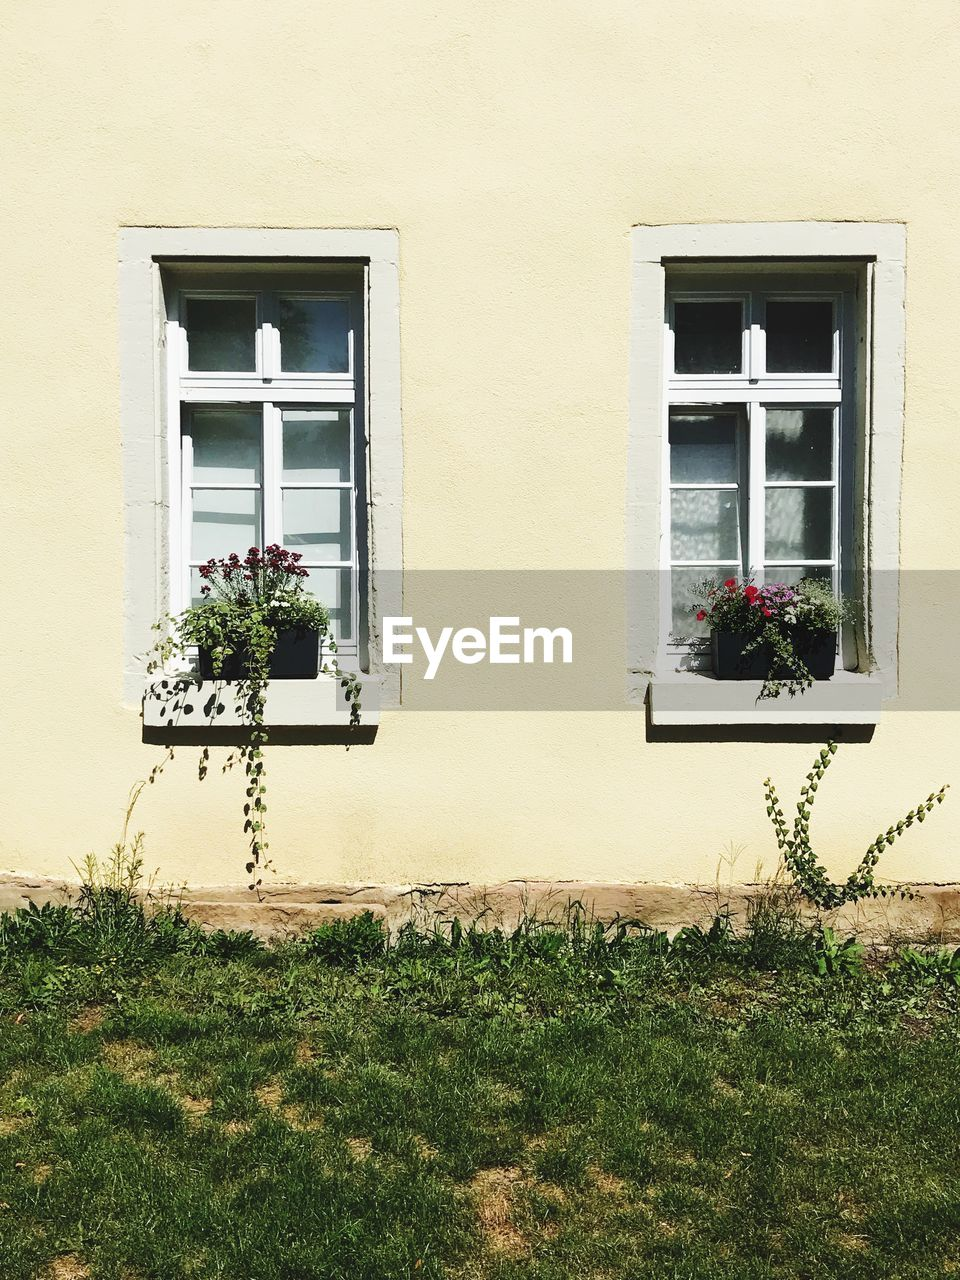 building exterior, architecture, built structure, window, plant, building, flower, flowering plant, no people, day, nature, house, outdoors, grass, residential district, growth, wall - building feature, white color, potted plant, yellow, window box, window frame